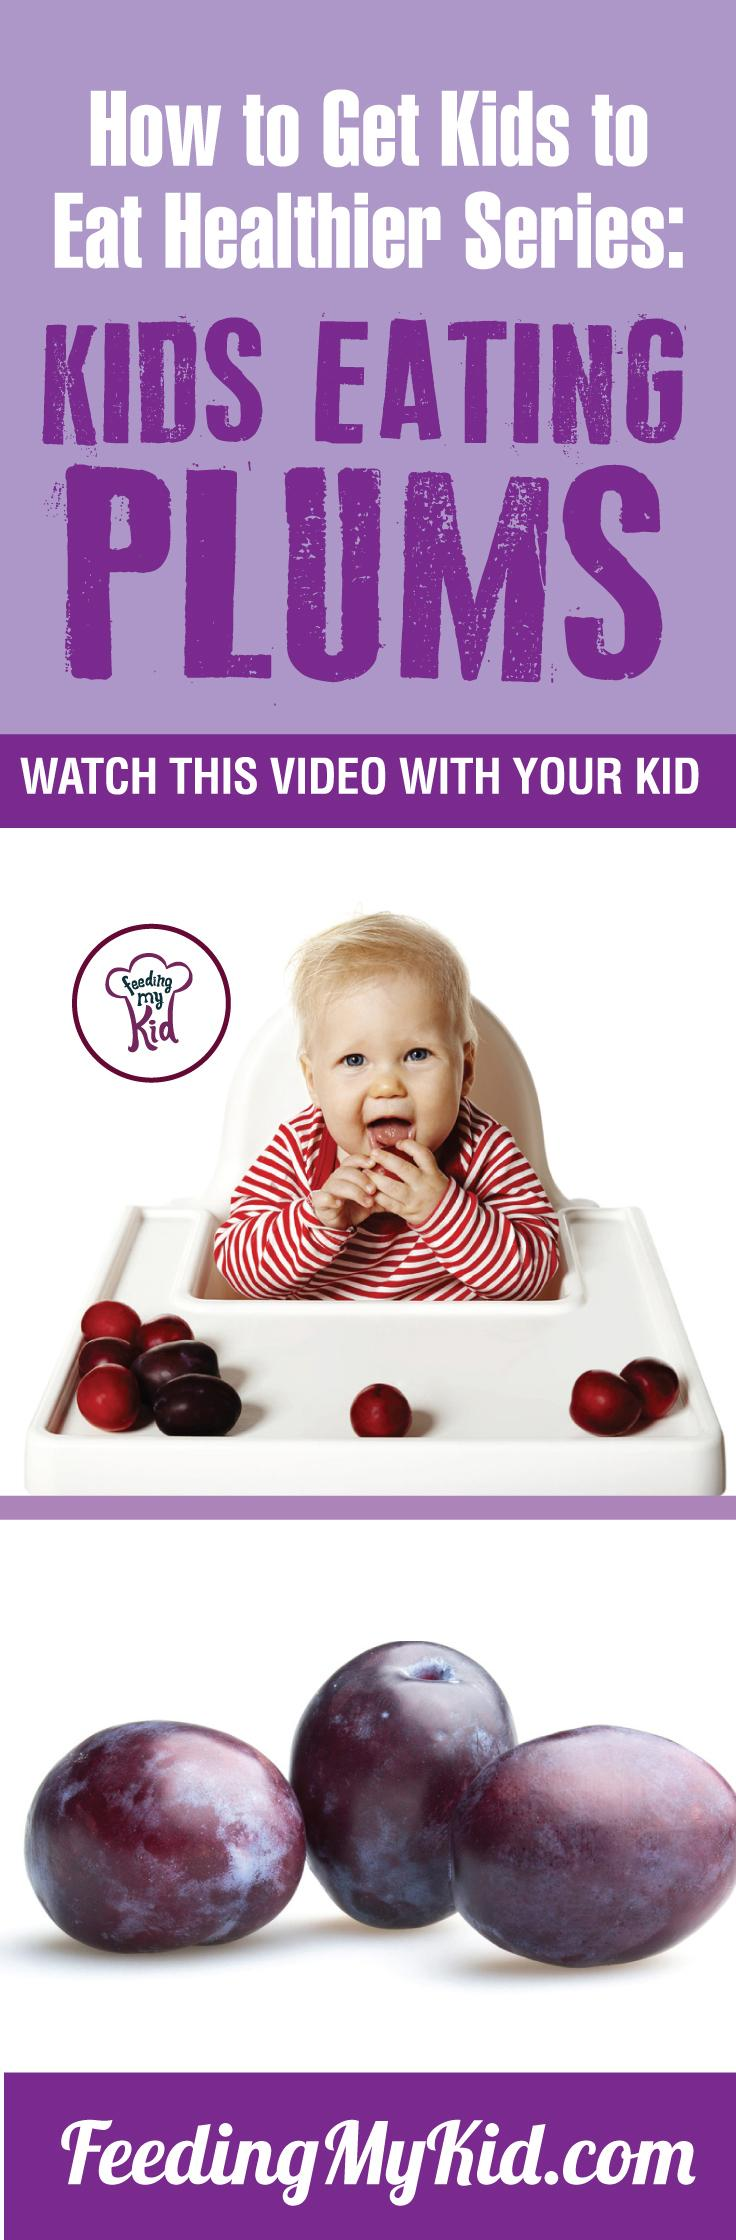 Watch these videos with your kids of kids eating plums and get your kids to eat plums. Find out how it works here. Feeding My Kid is a filled with all the information you need about how to raise your kids, from healthy tips to nutritious recipes. #plums #pickyeating #getkidstoeat